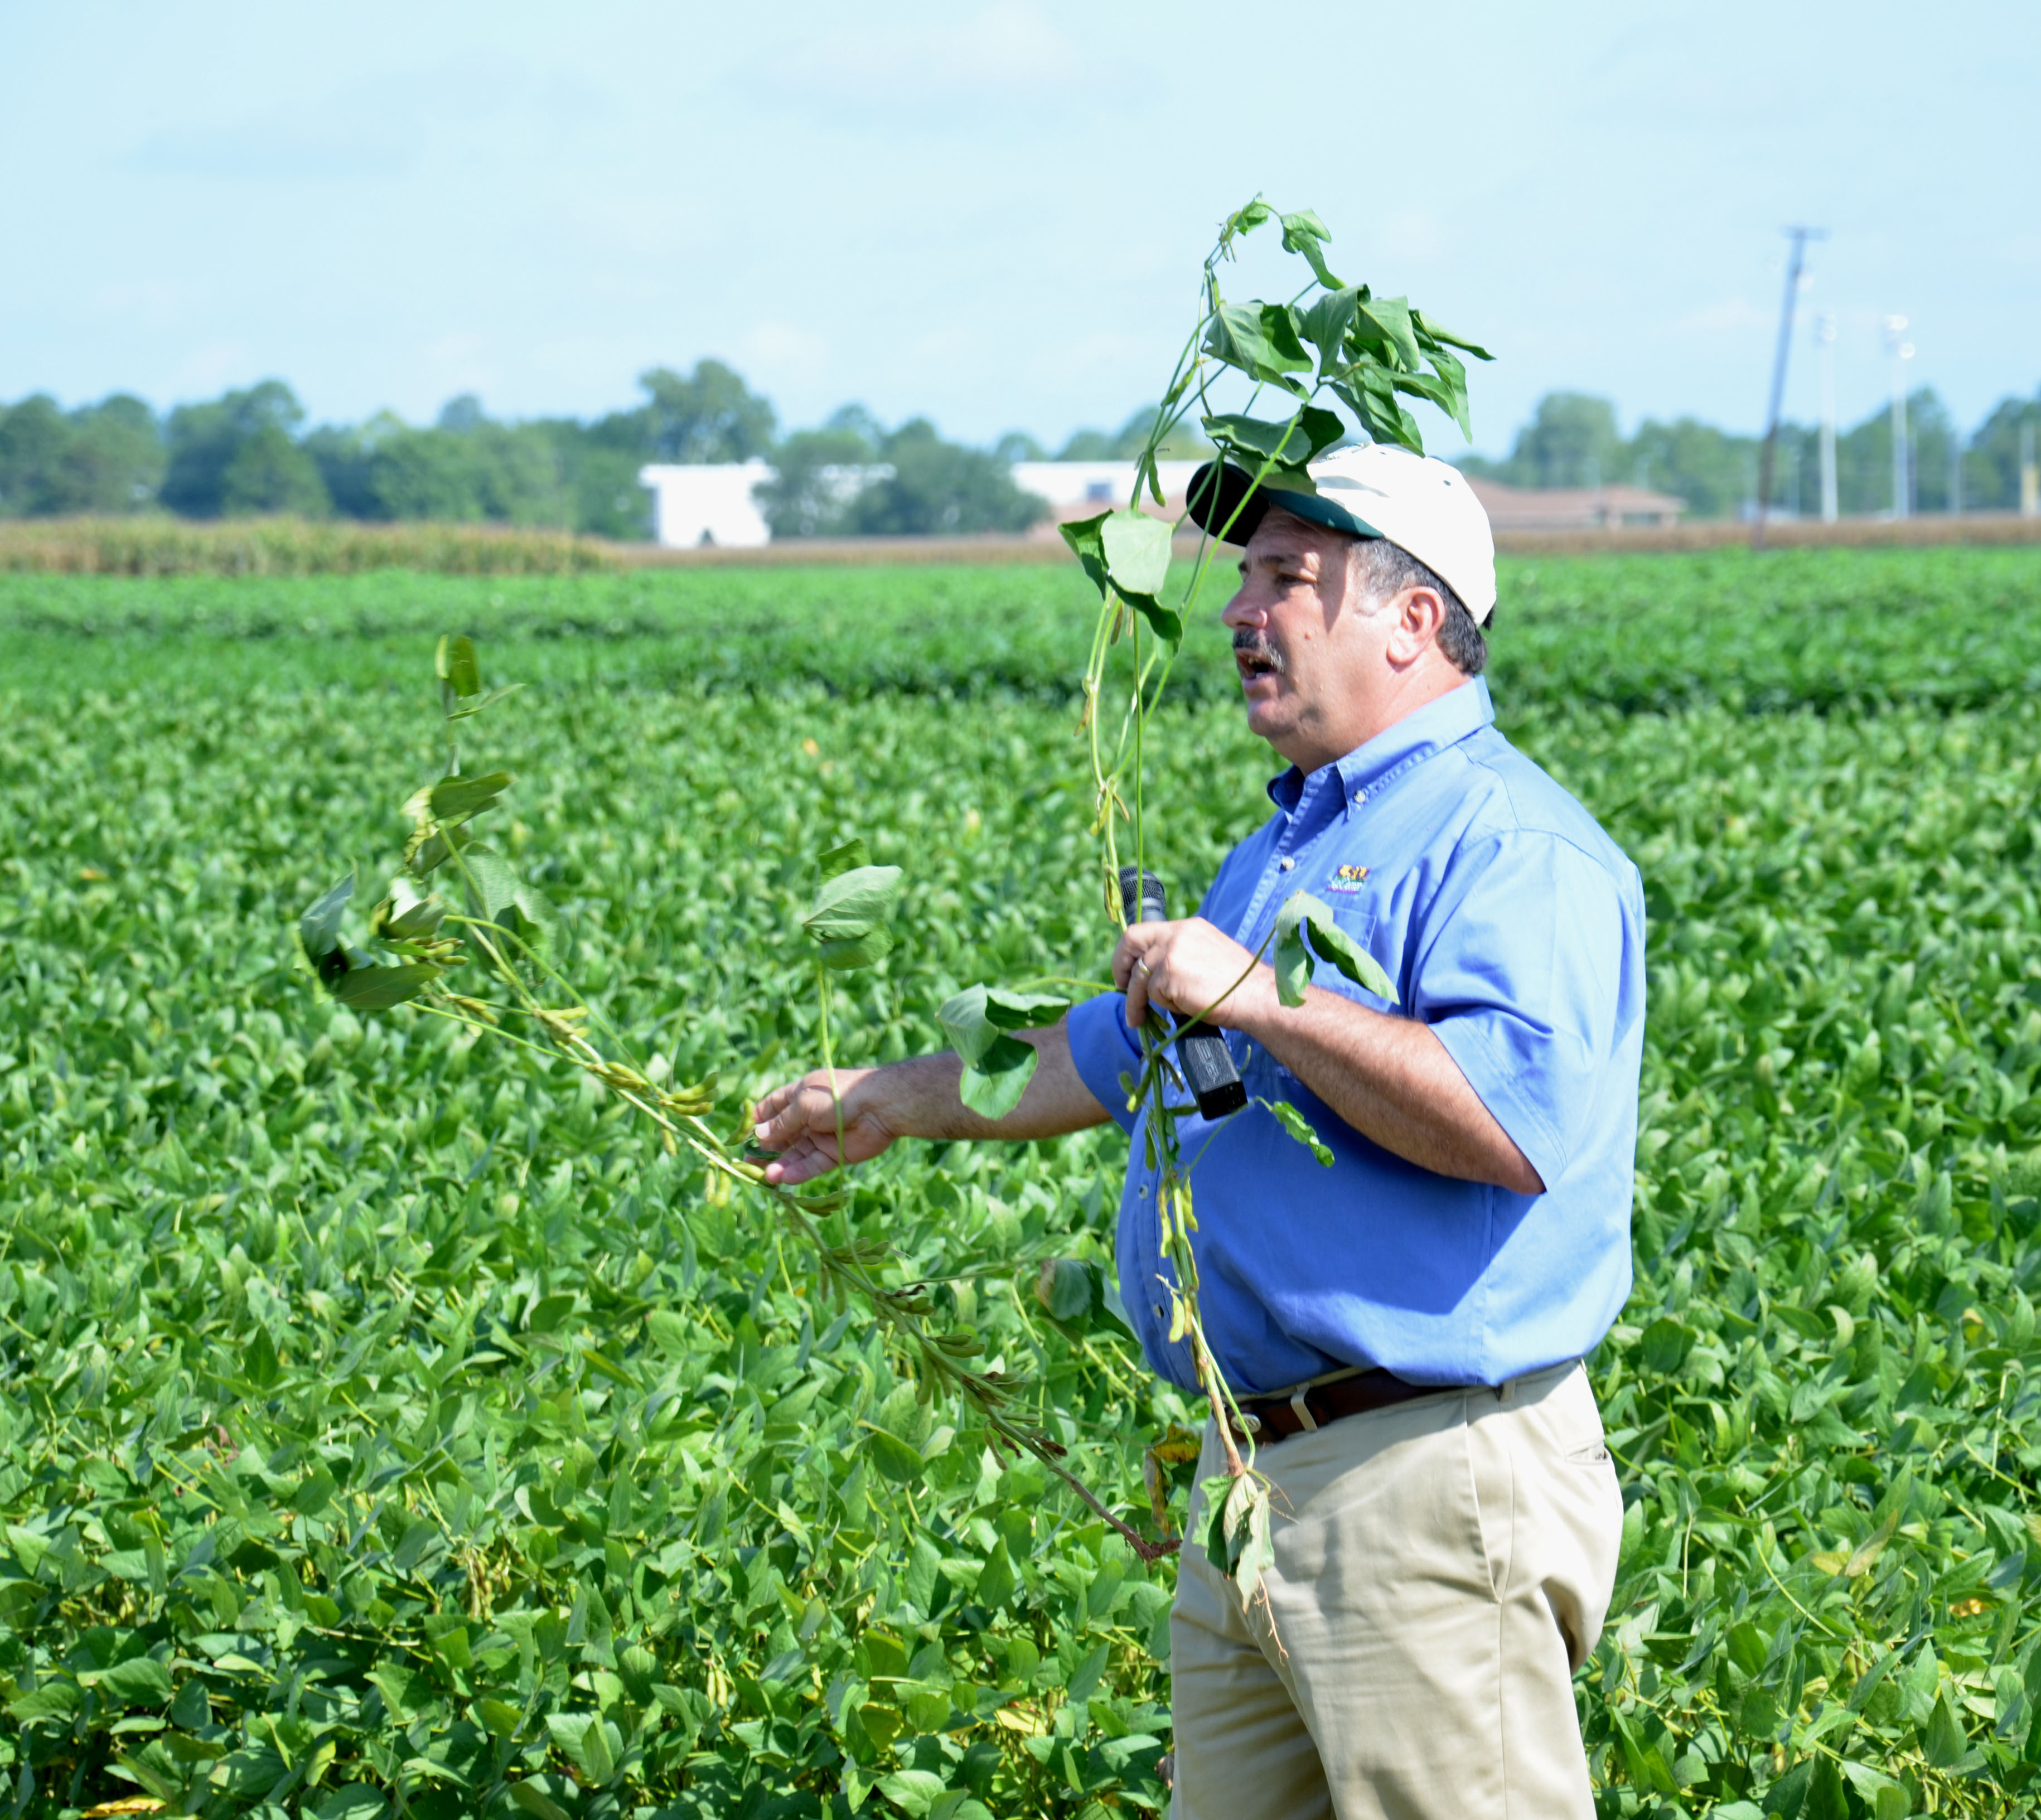 Demonstration fields teach farmers how to improve yields